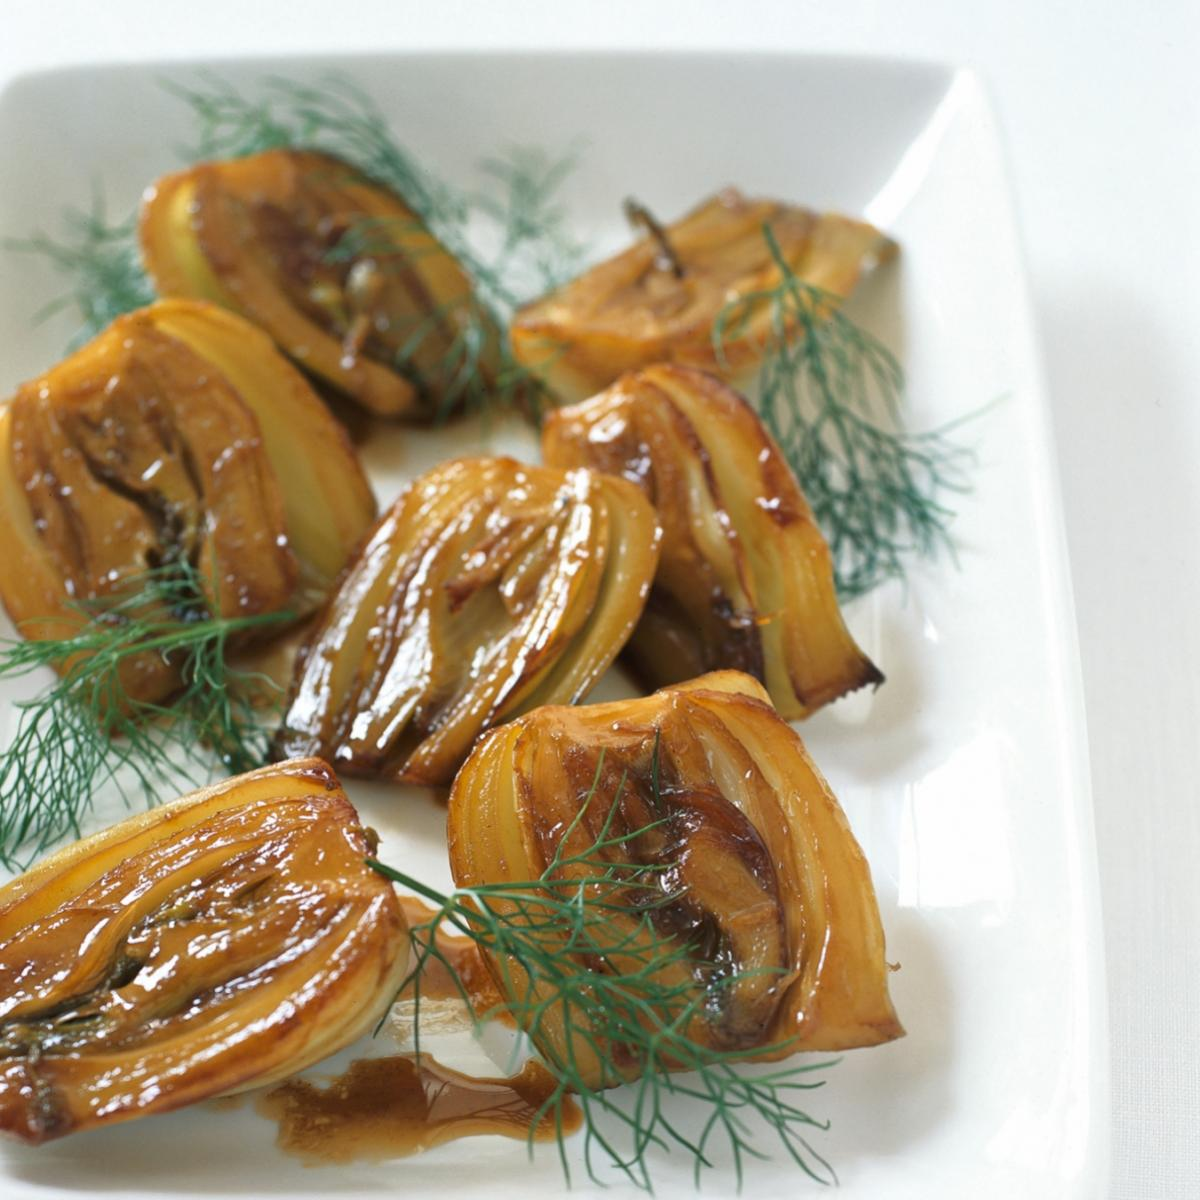 A picture of Delia's Sauteed Caramelised Fennel recipe